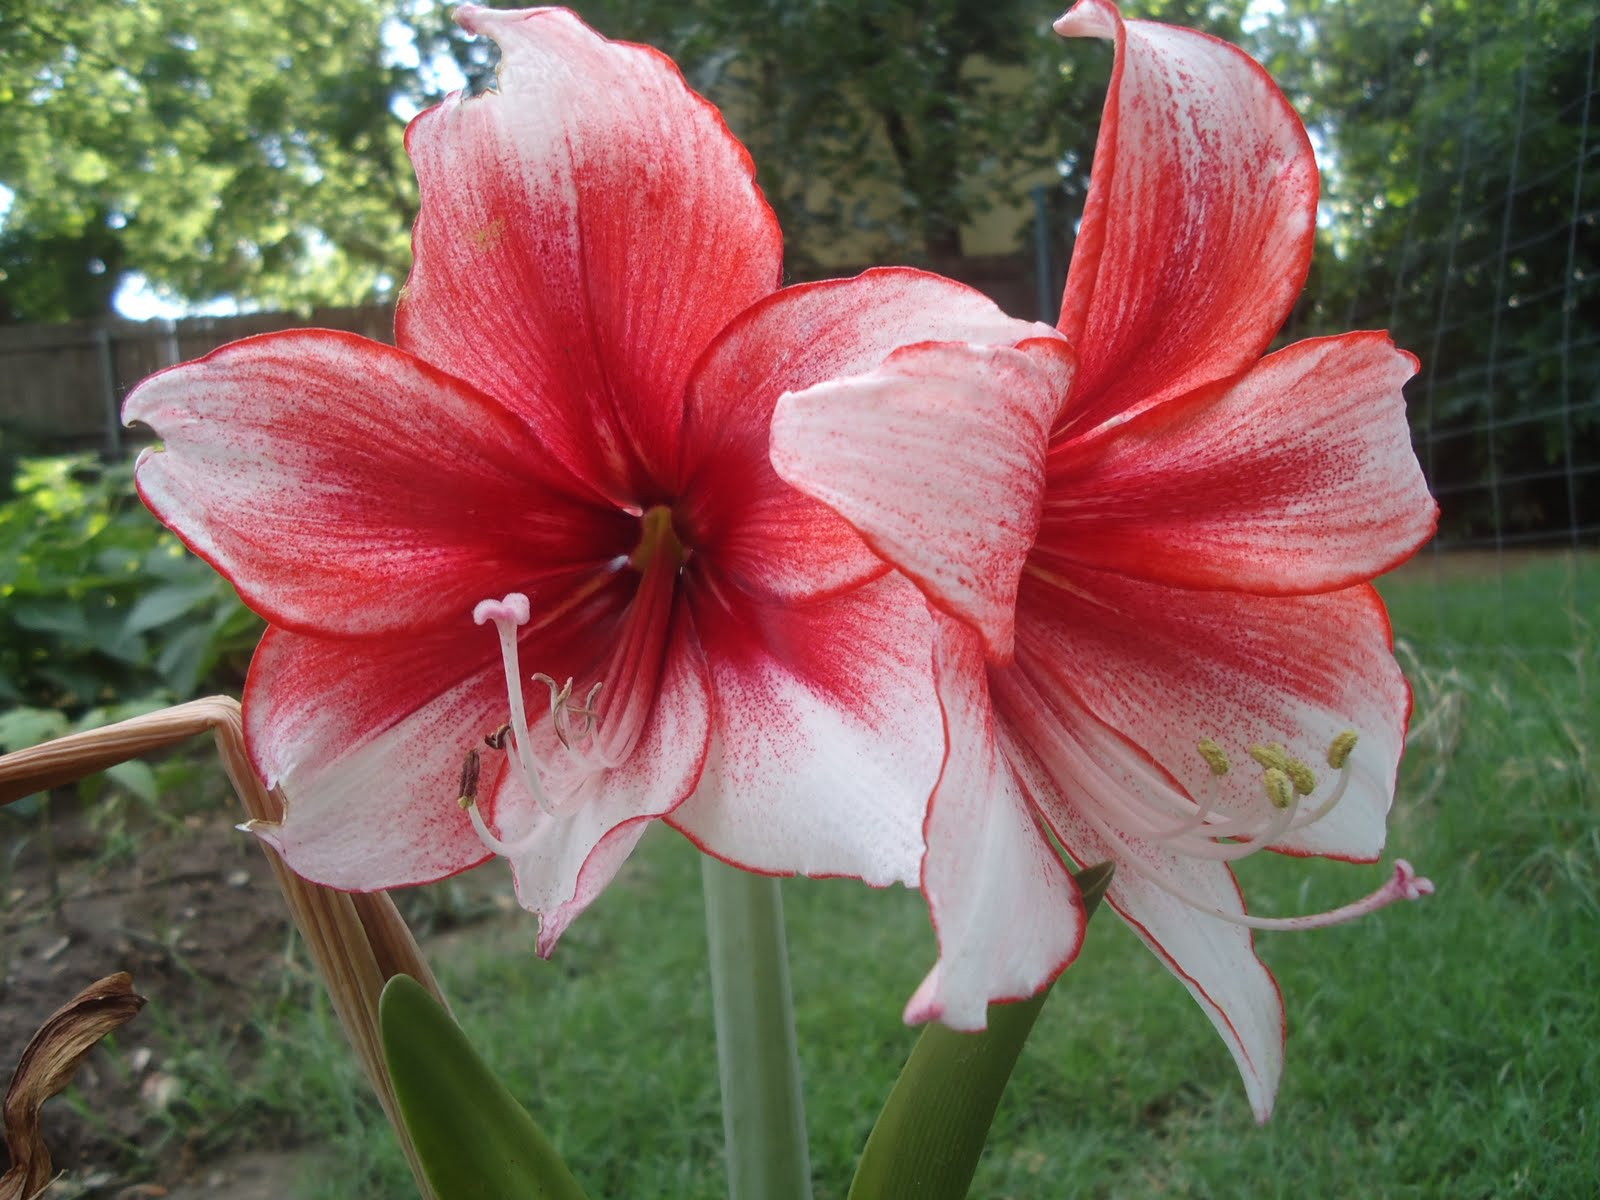 Joe and sandra 39 s hippies hippeastrum temptation for Hippeastrum royal red entretien